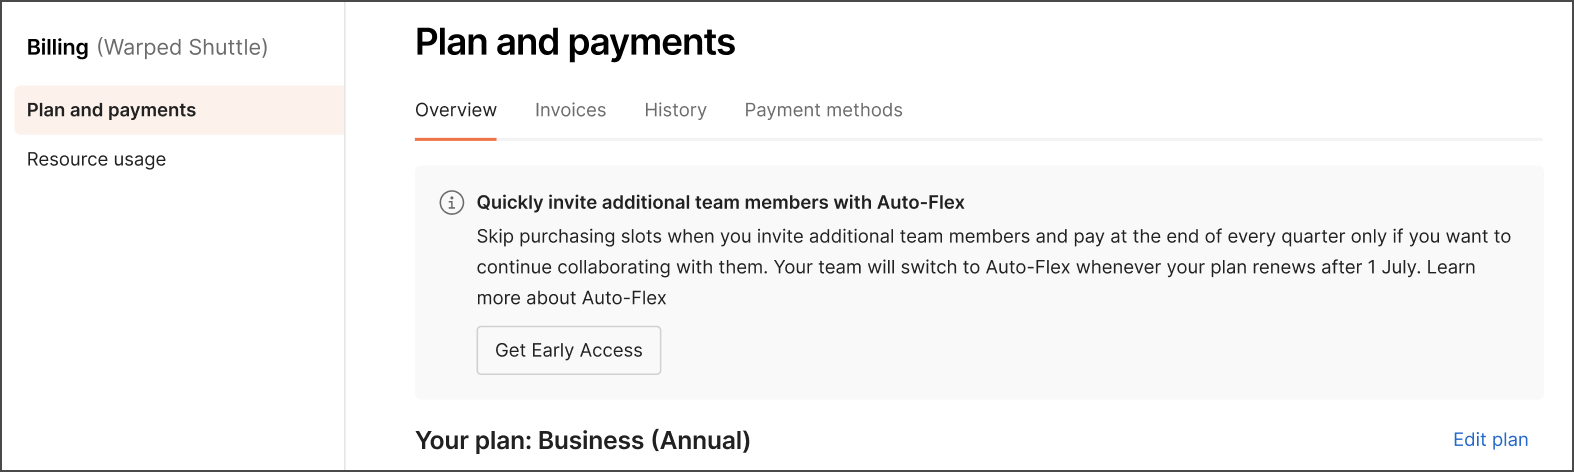 Auto-flex opt in early notification